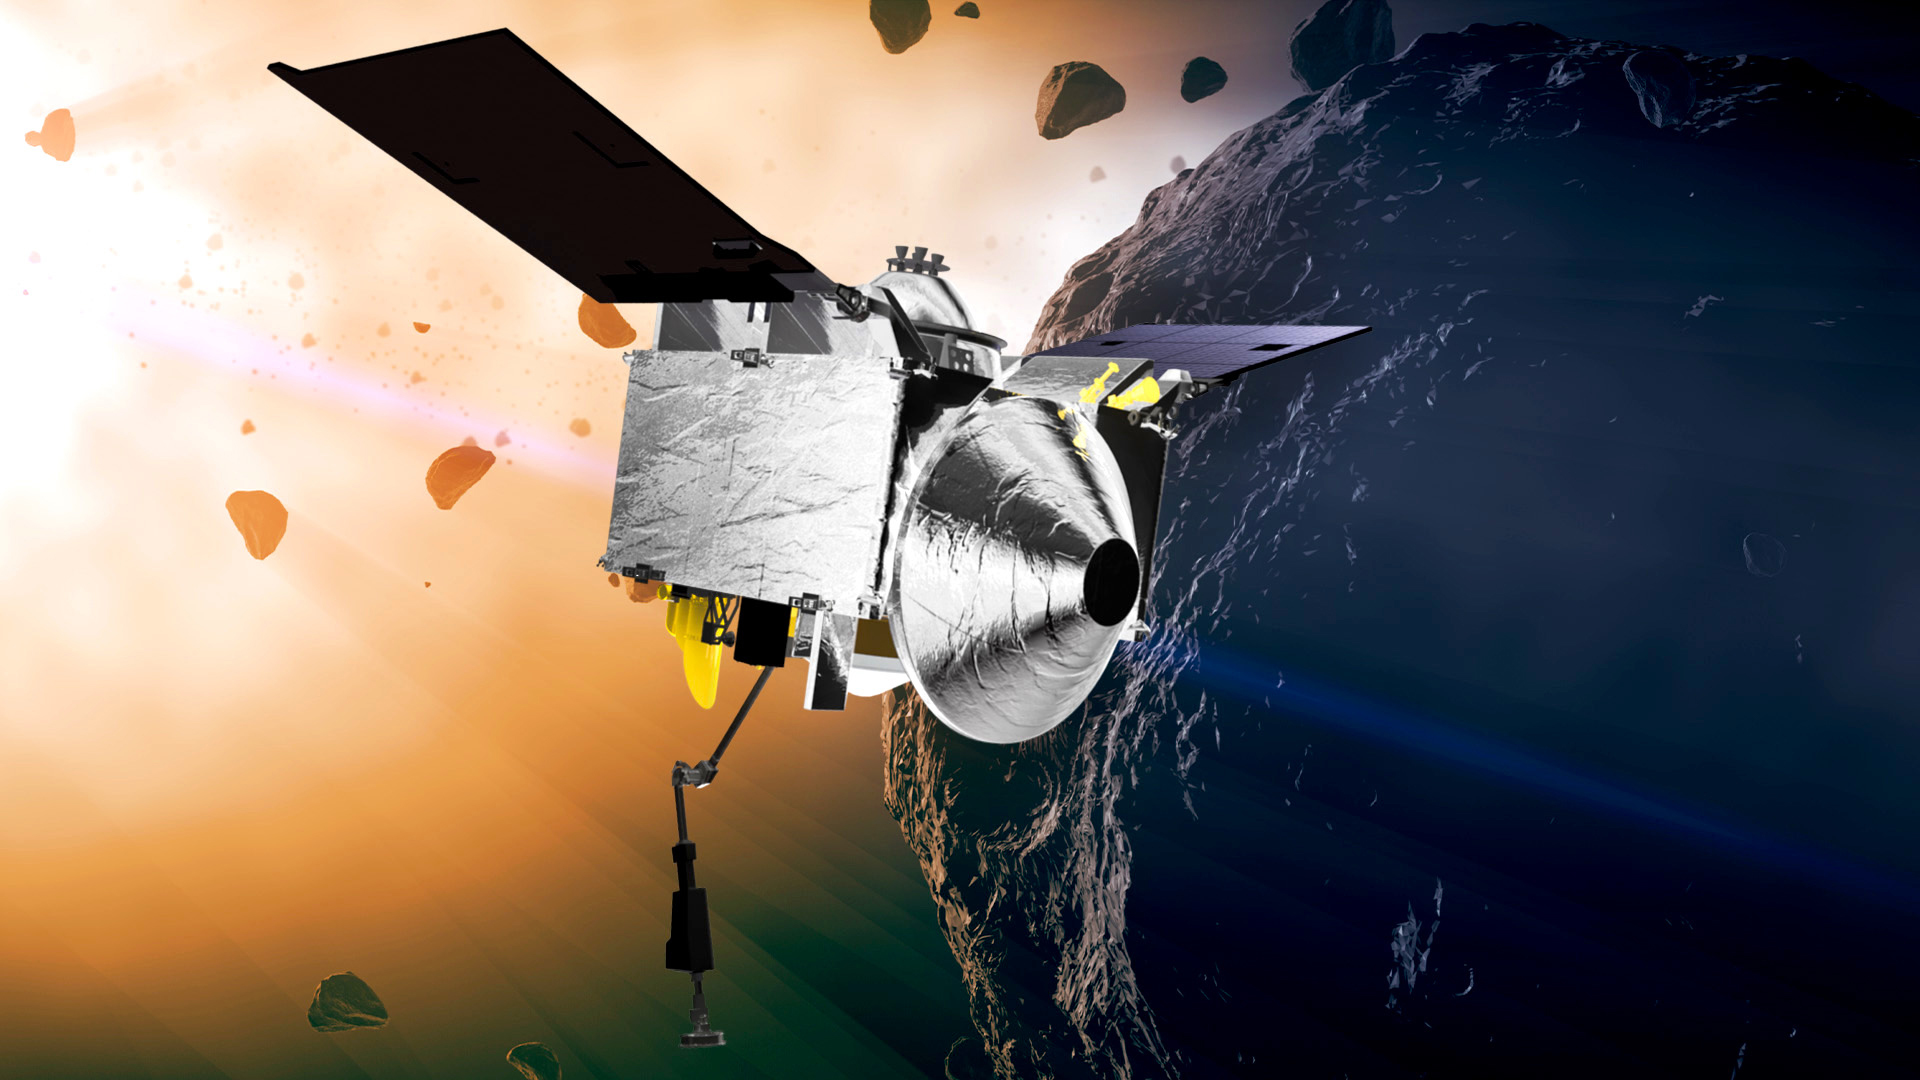 This illustration provided by NASA depicts the OSIRIS-REx spacecraft at the asteroid Bennu. The rocky remnant from the dawn of the solar system may hold clues to the origins of life.